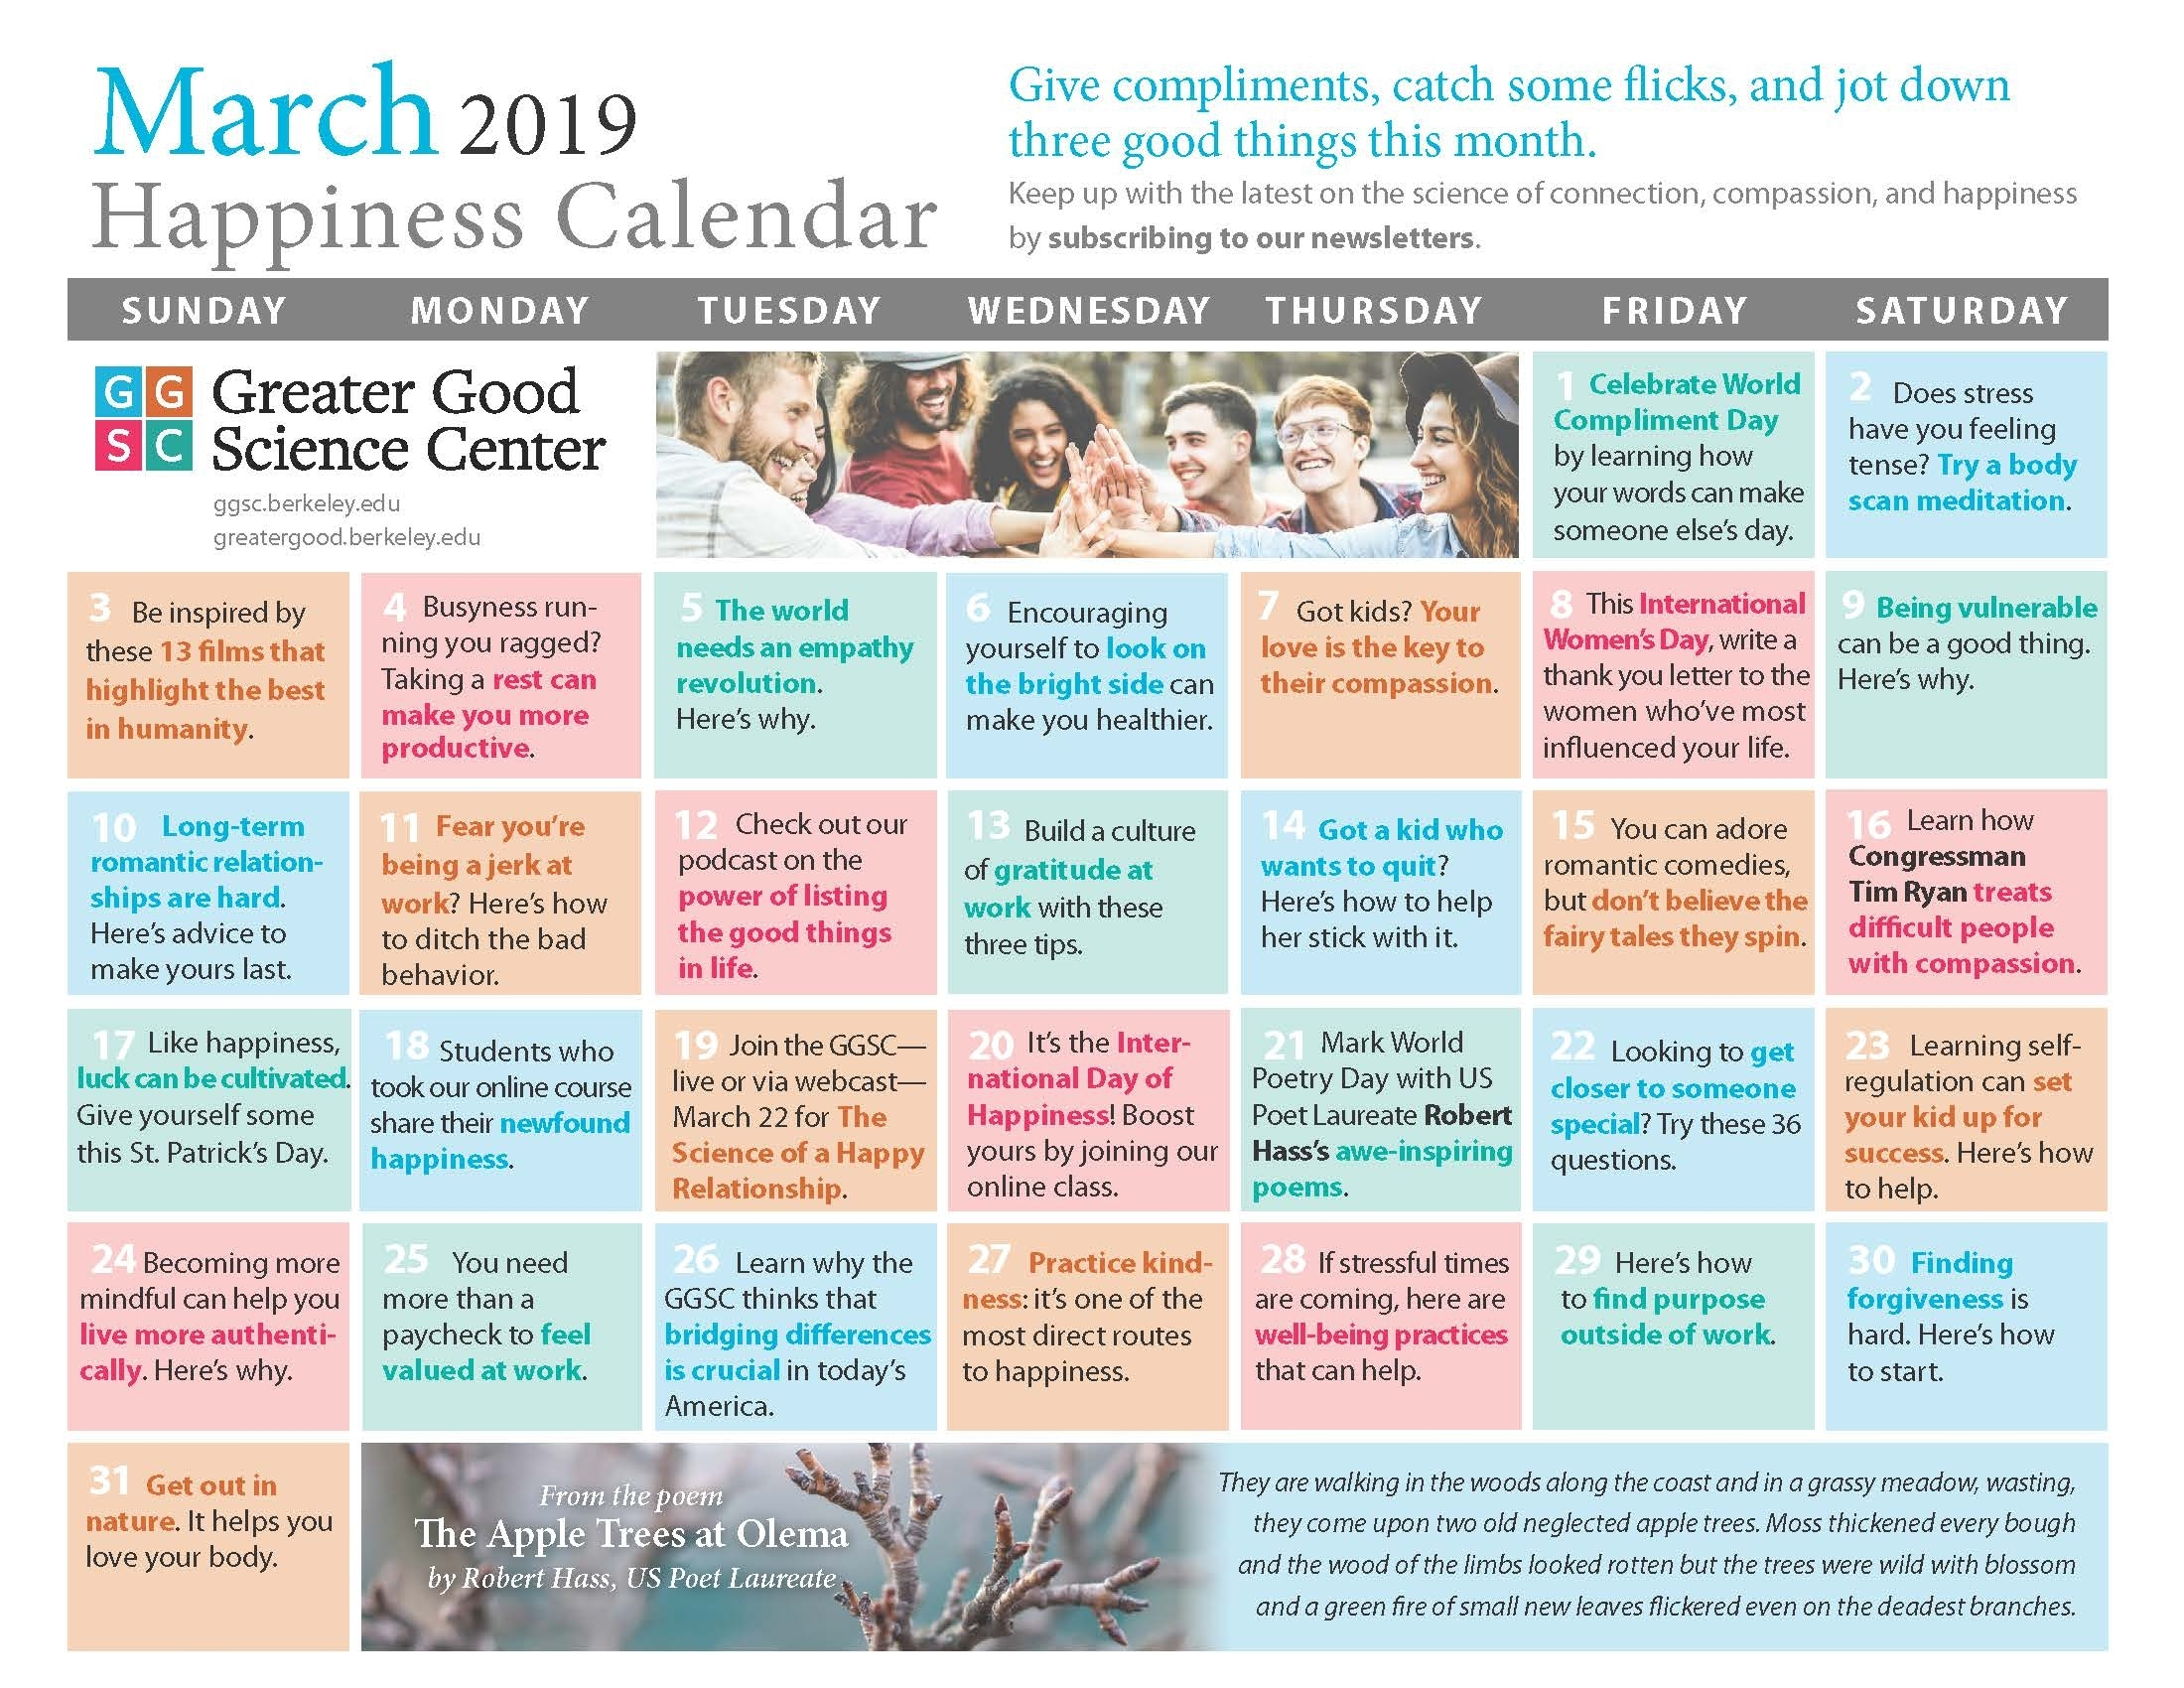 Your Happiness Calendar For March 2019 within Uc Berkeley Calendar 2019 2020